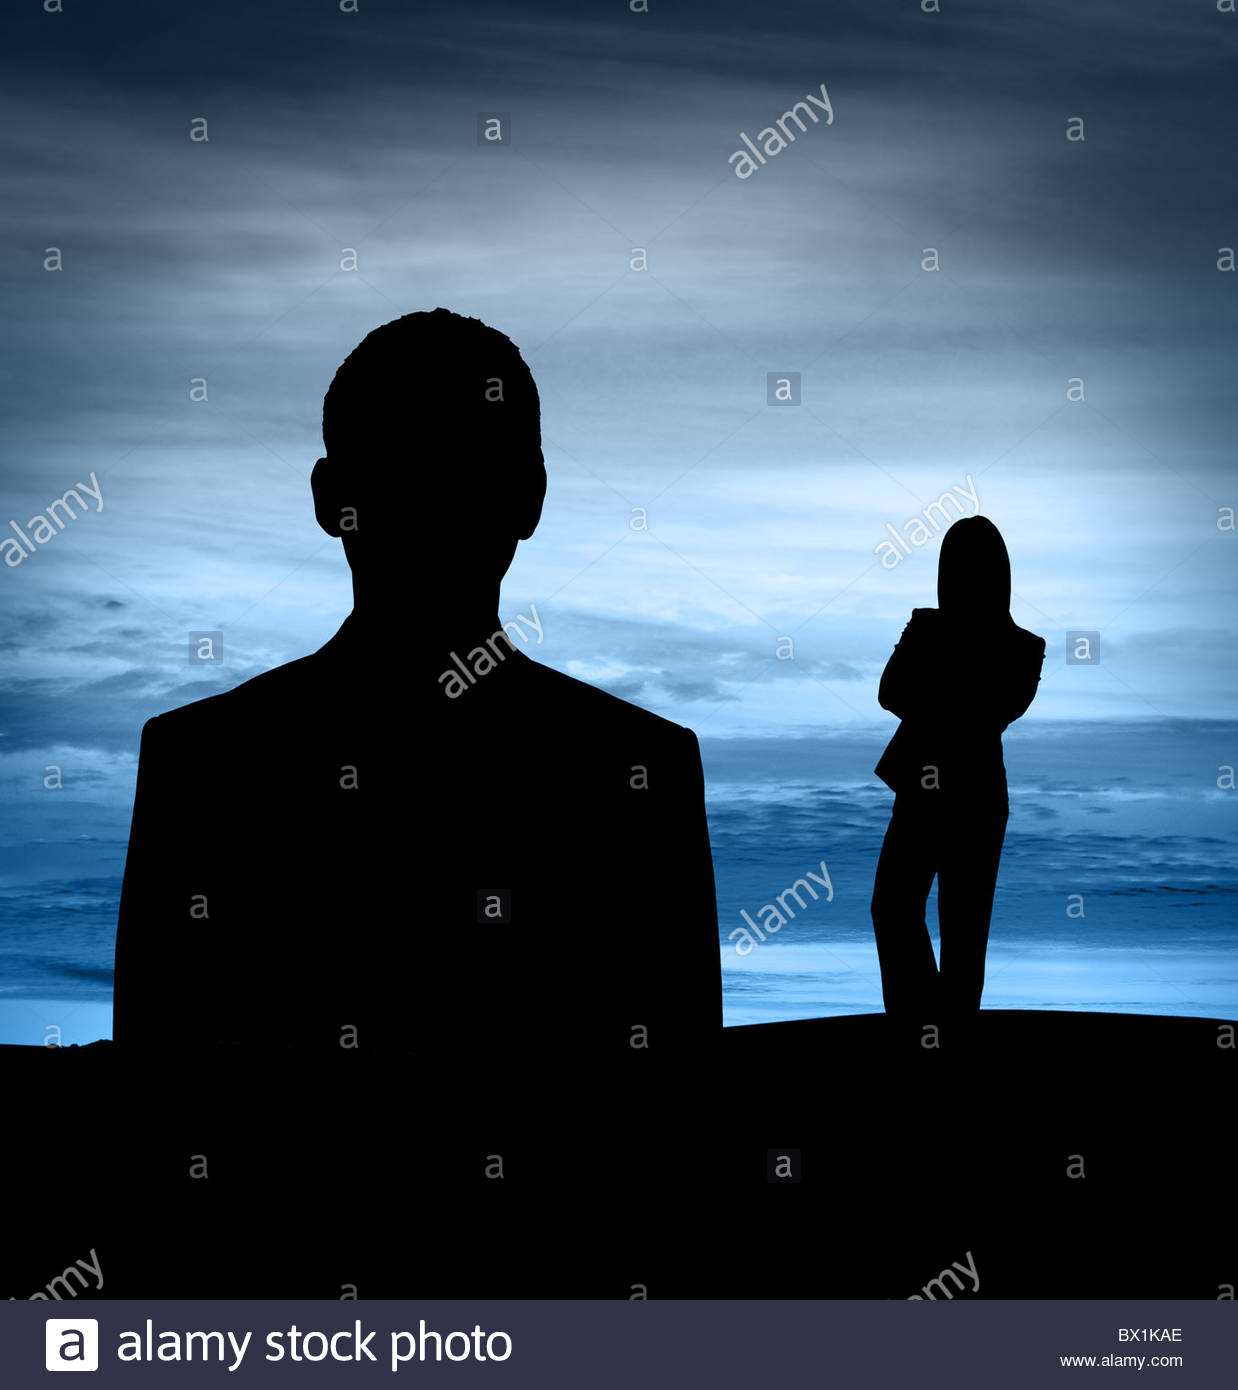 Business man and woman silhouette - Stock Image